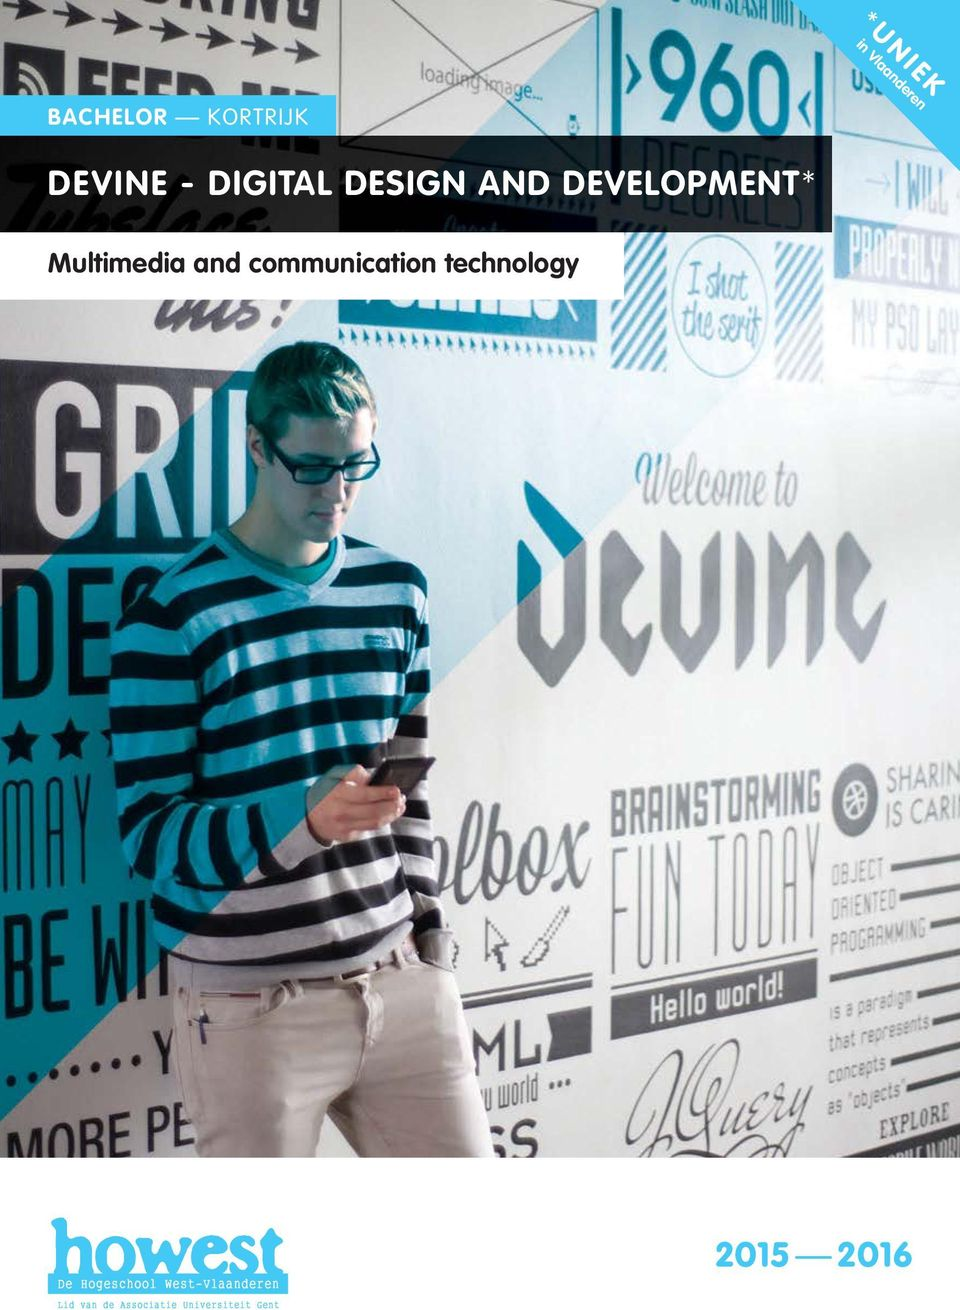 DIGITAL DESIGN AND DEVELOPMENT*